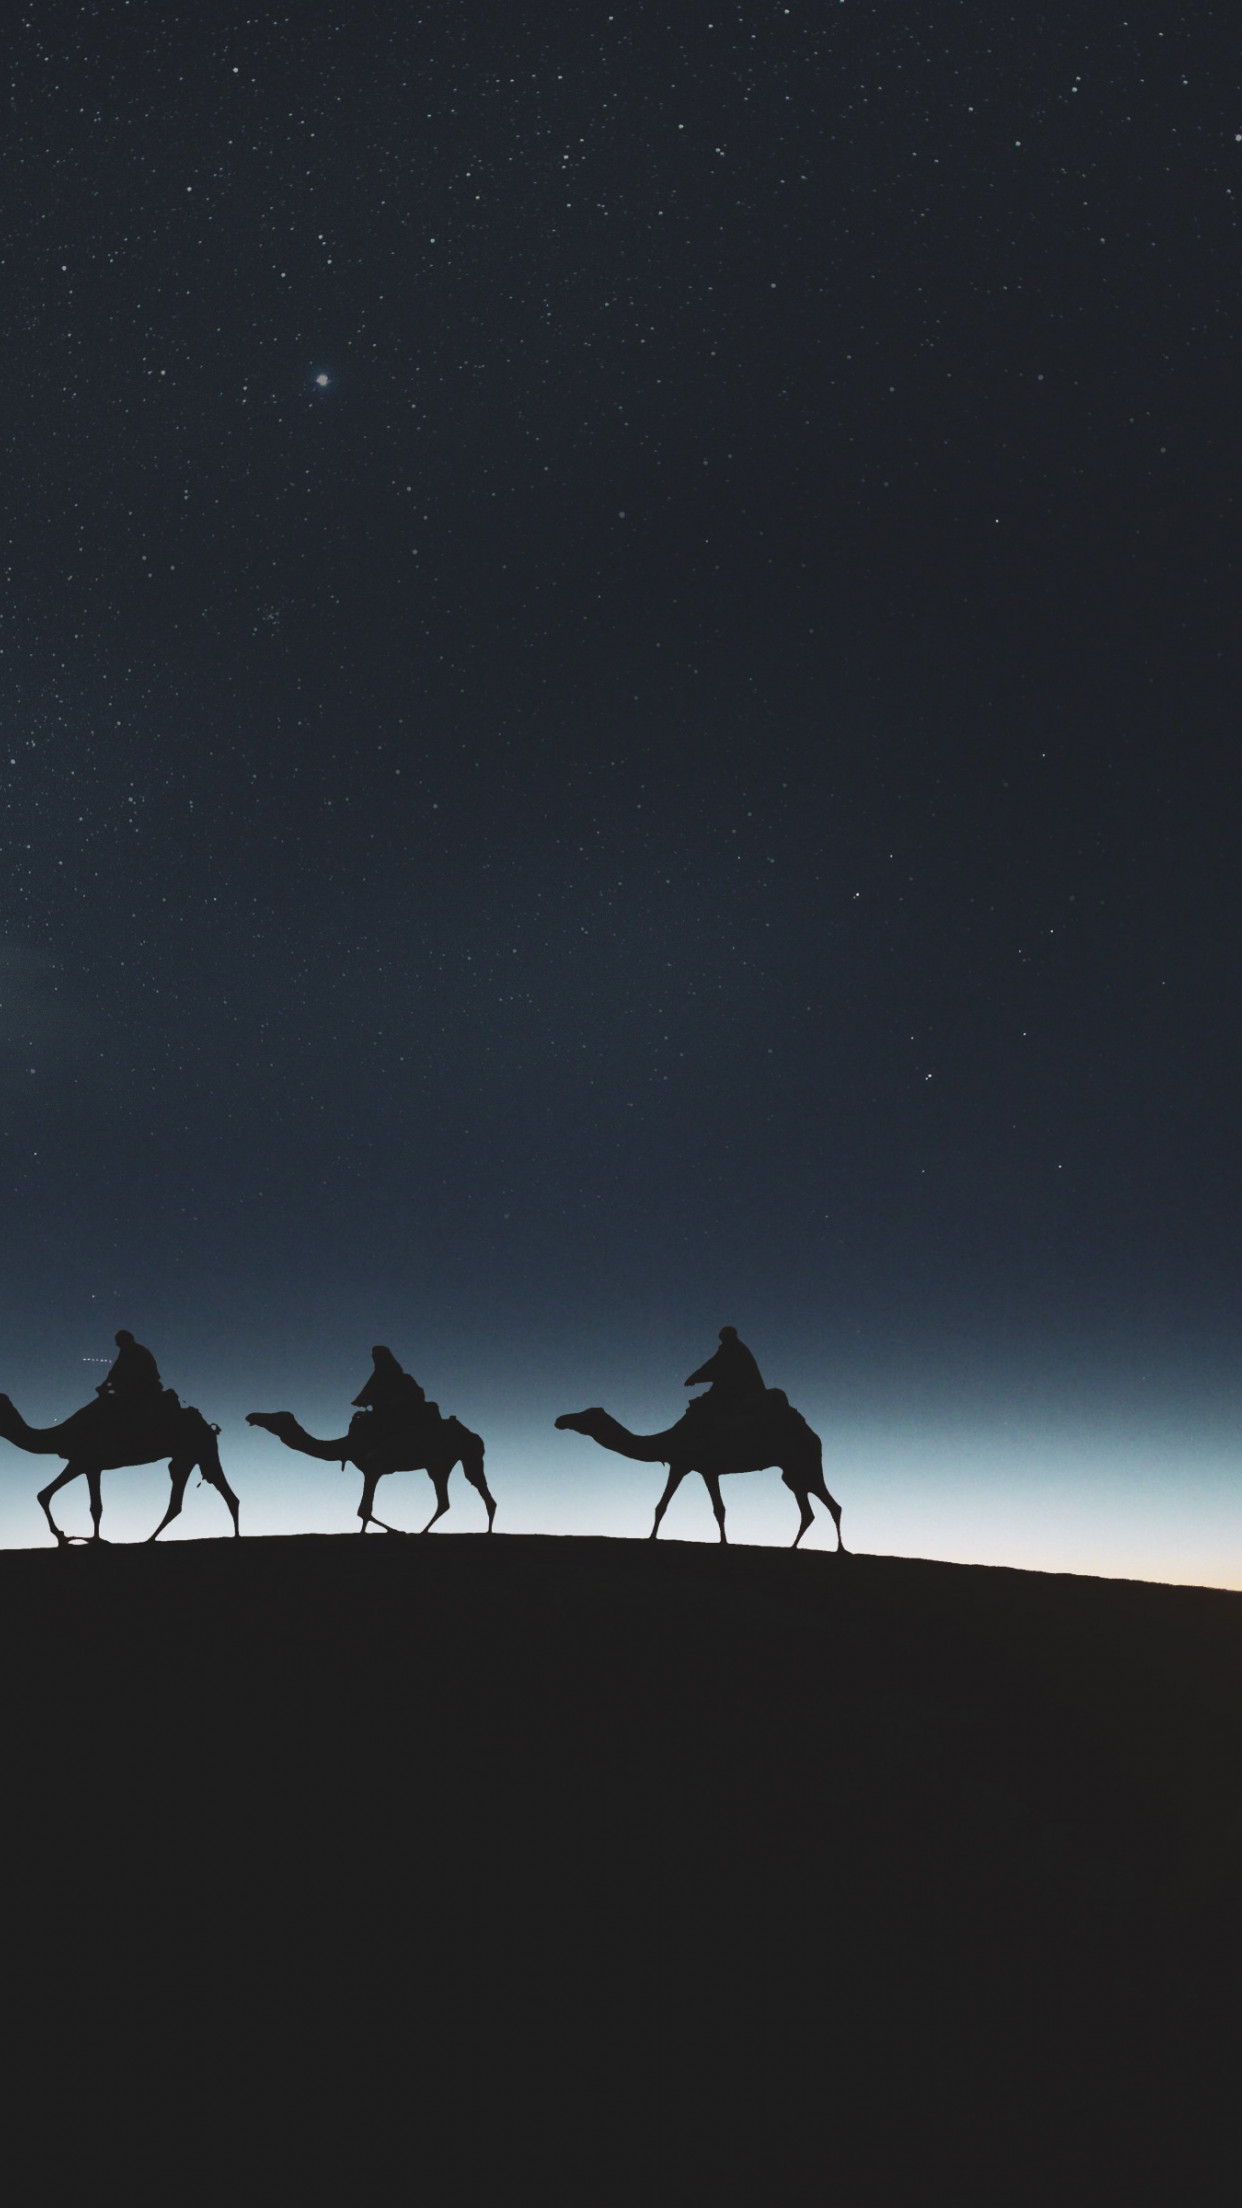 Traveling through desert on camels wallpaper 1242x2208